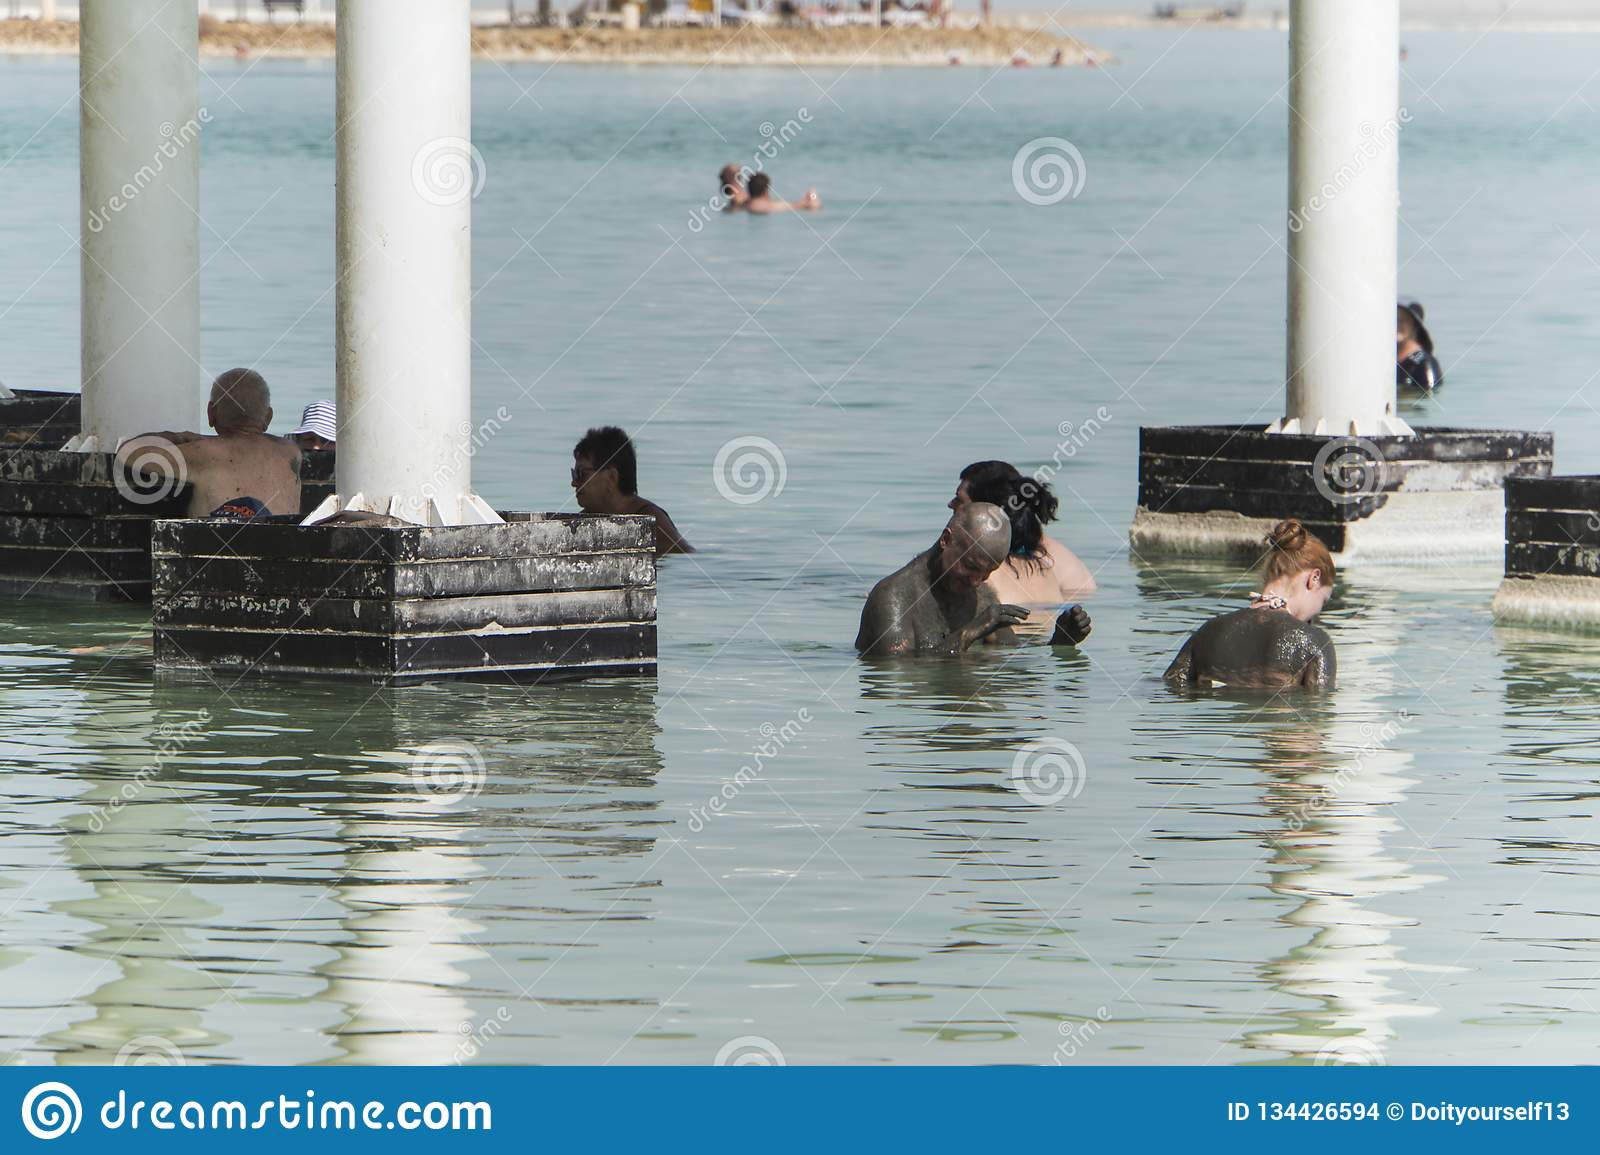 EIN BOKEK, ISRAEL 22 October 2018: People floating in Dead Sea circa